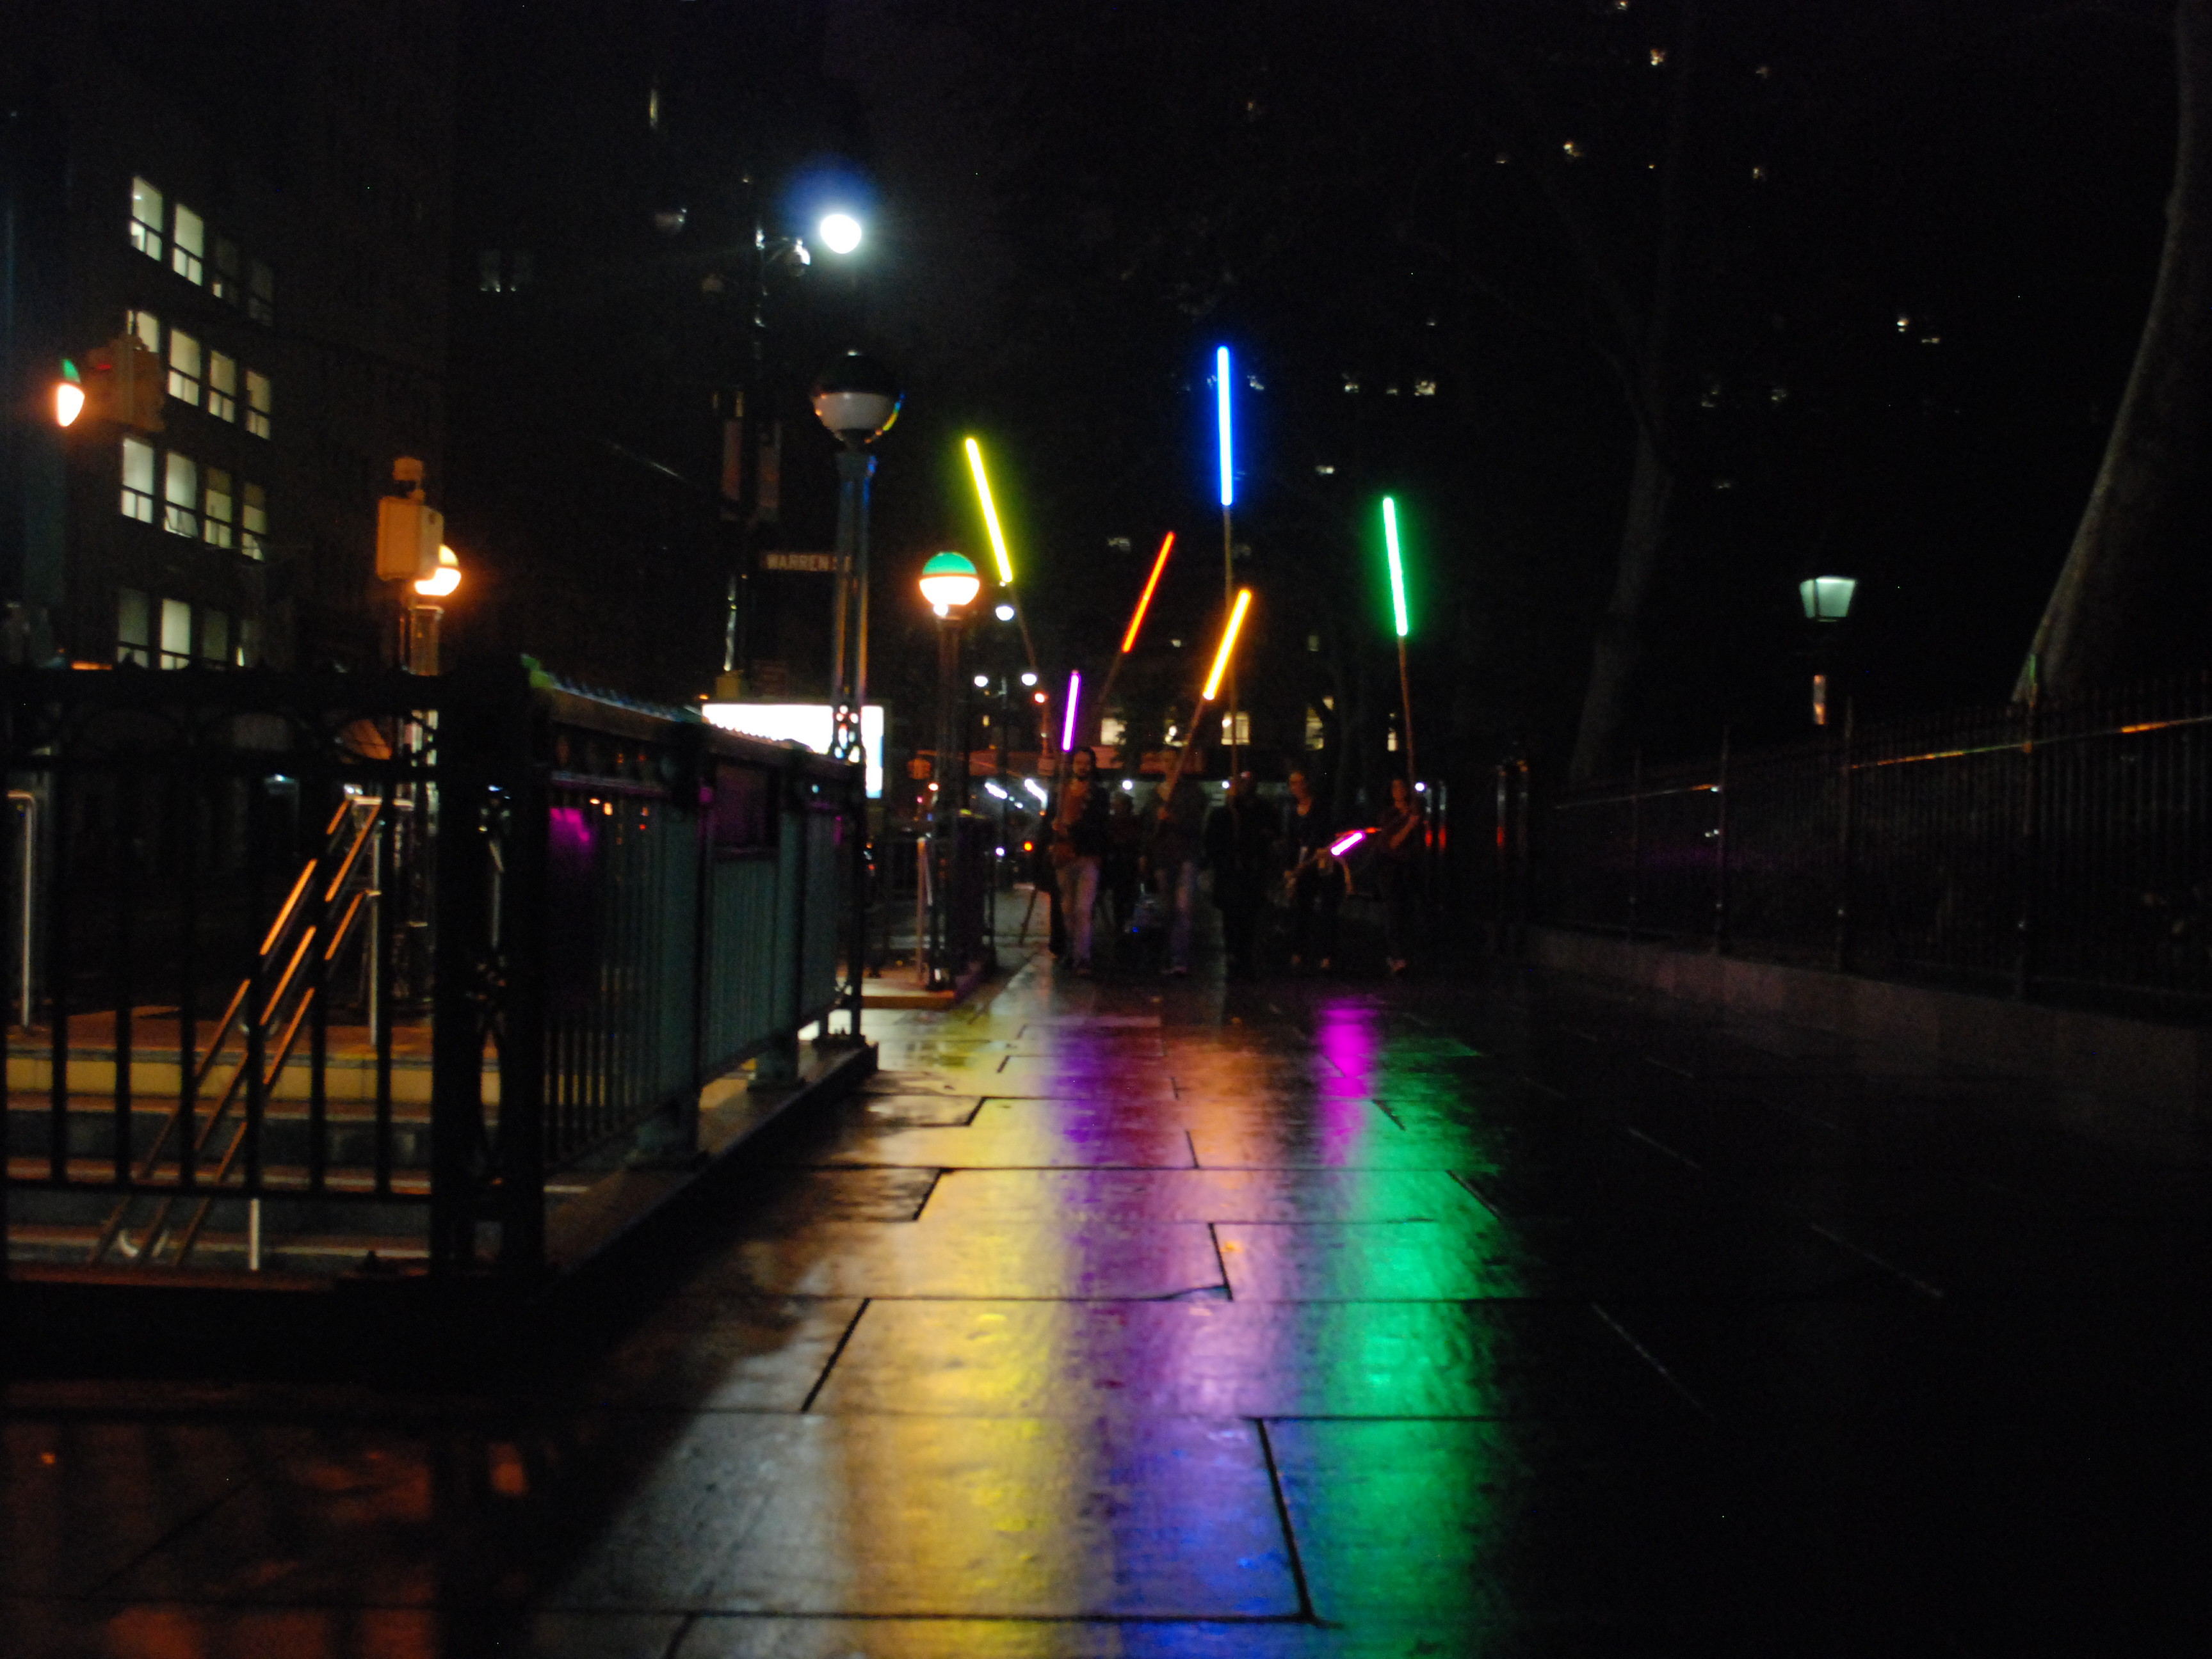 Foto: Felipe Ribeiro THINGS THAT MUST BE DONE SERIES Wall Street Action #5:  there was a rainbow in the middle of the night; there is a night in the middle of the rainbow  November 2015 - Performa 15, New York